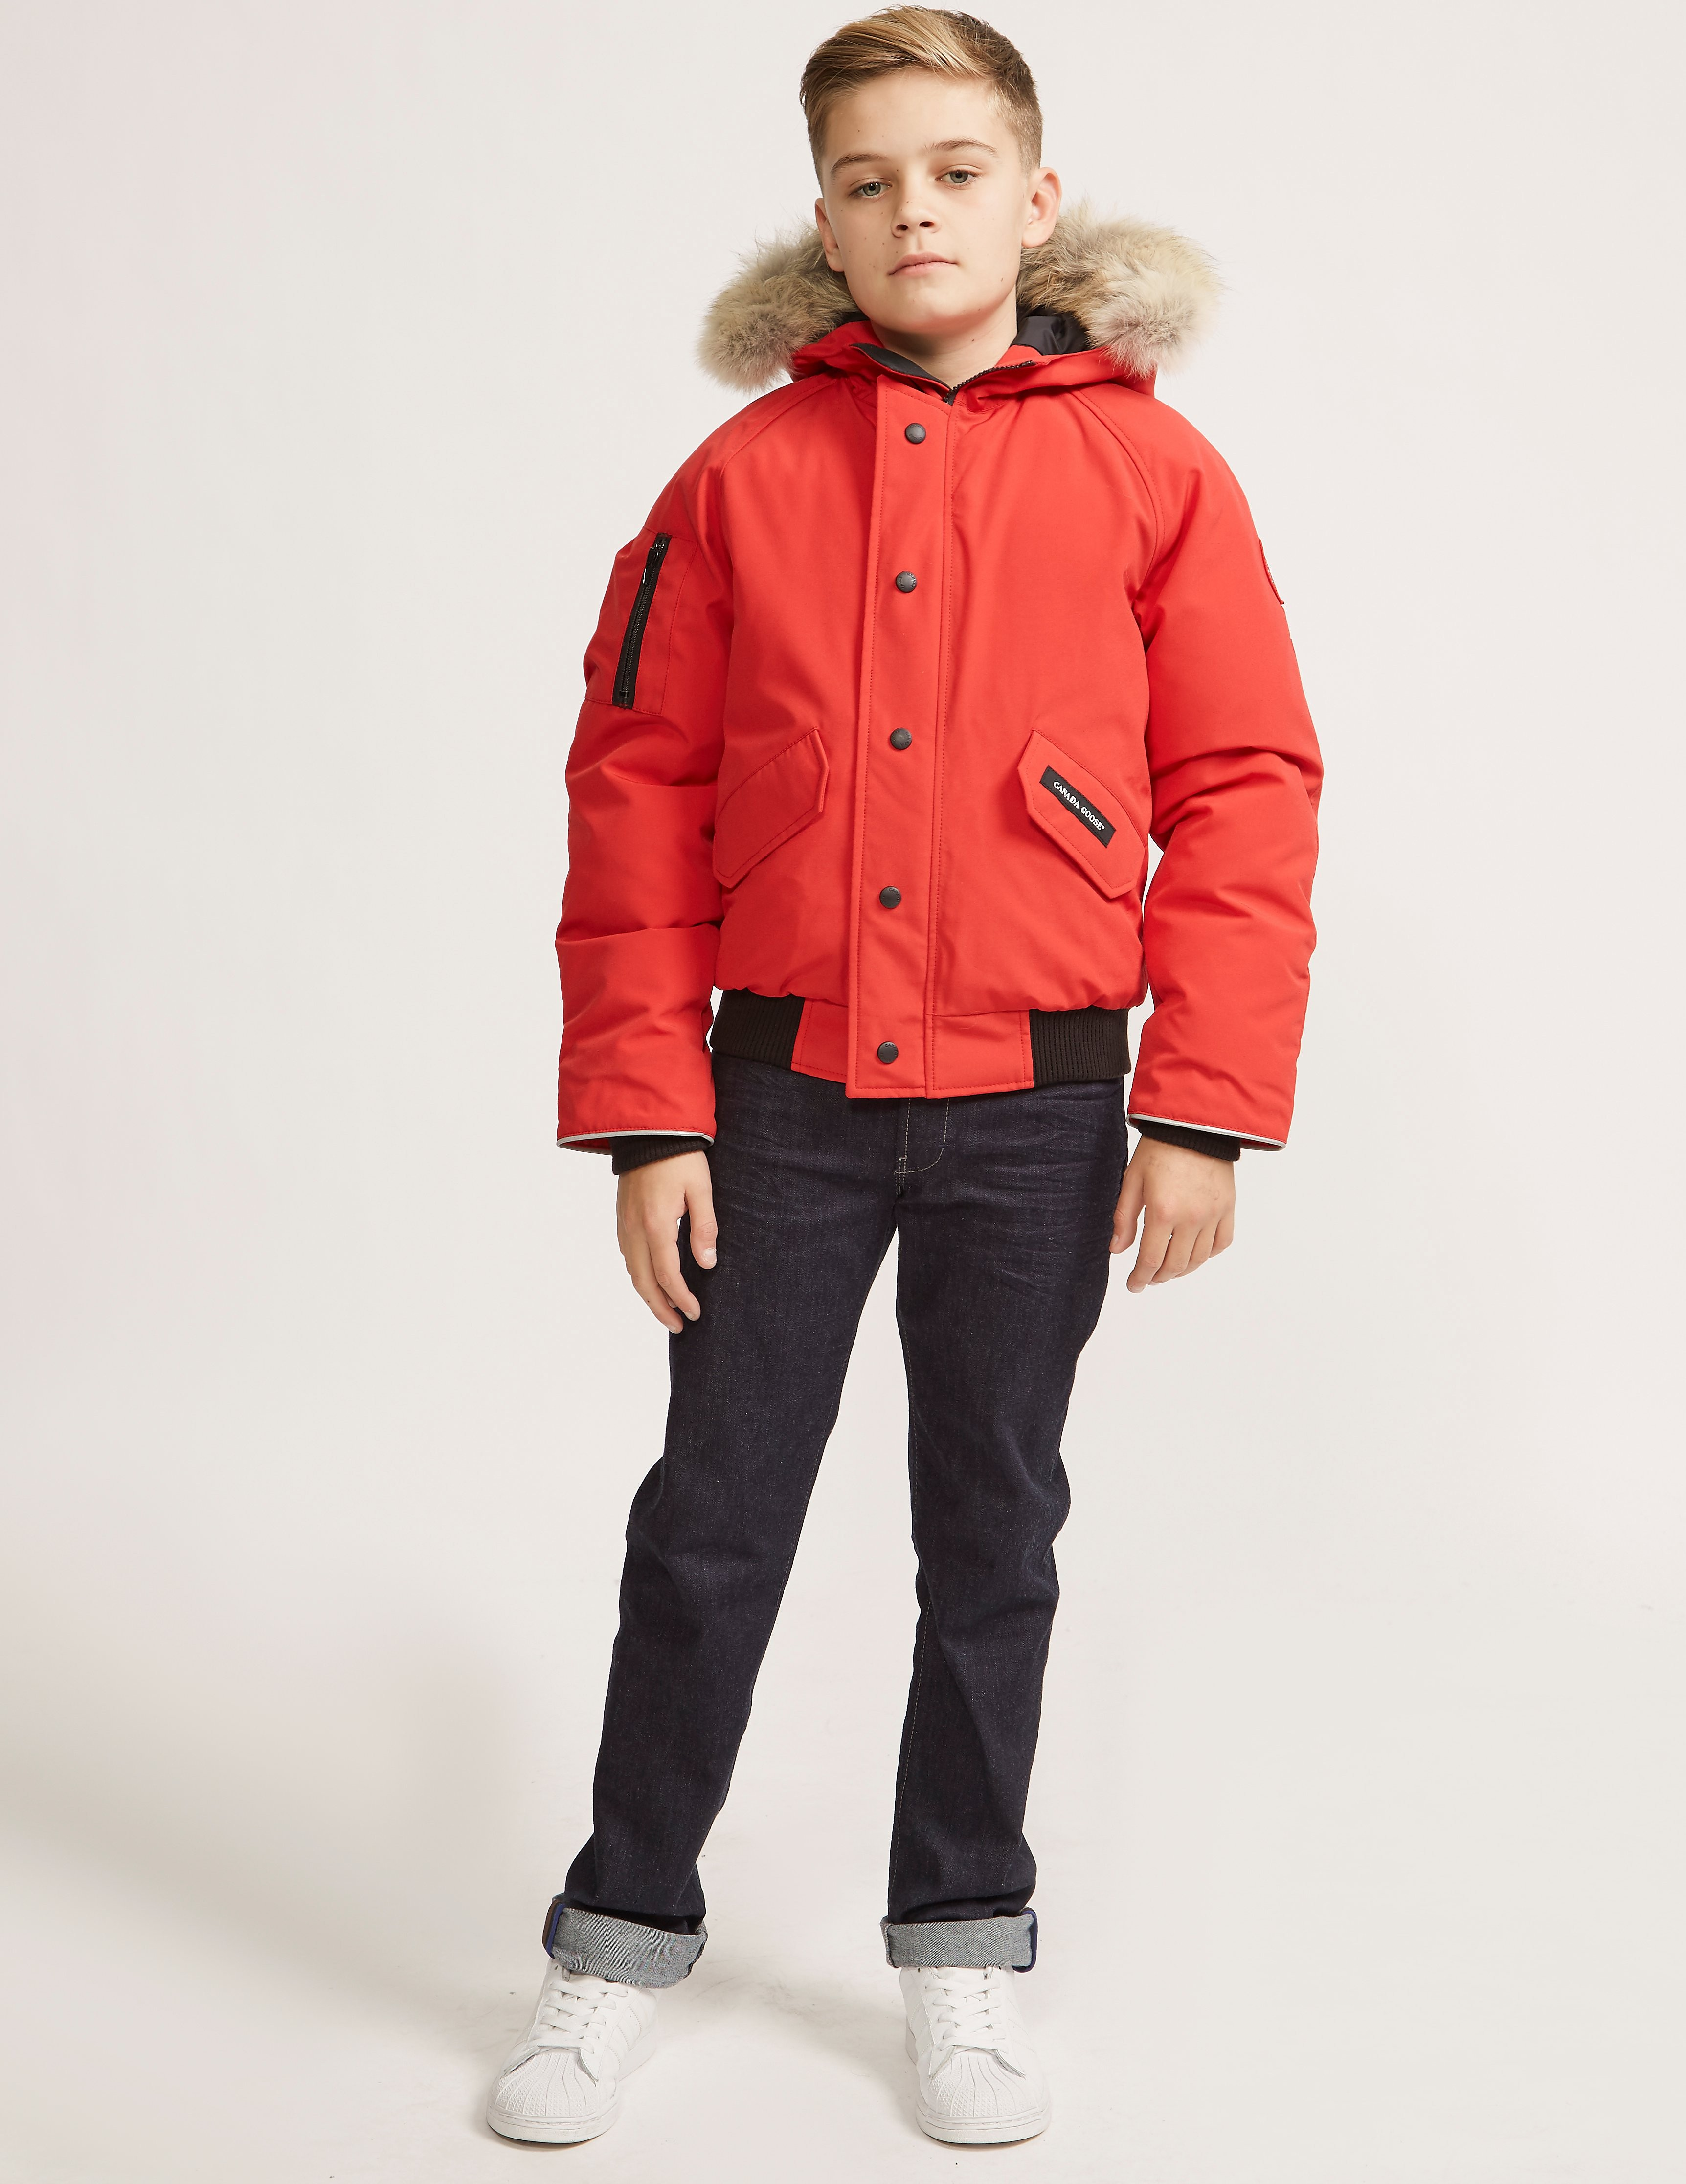 Canada Goose Kids' Rundle Bomber